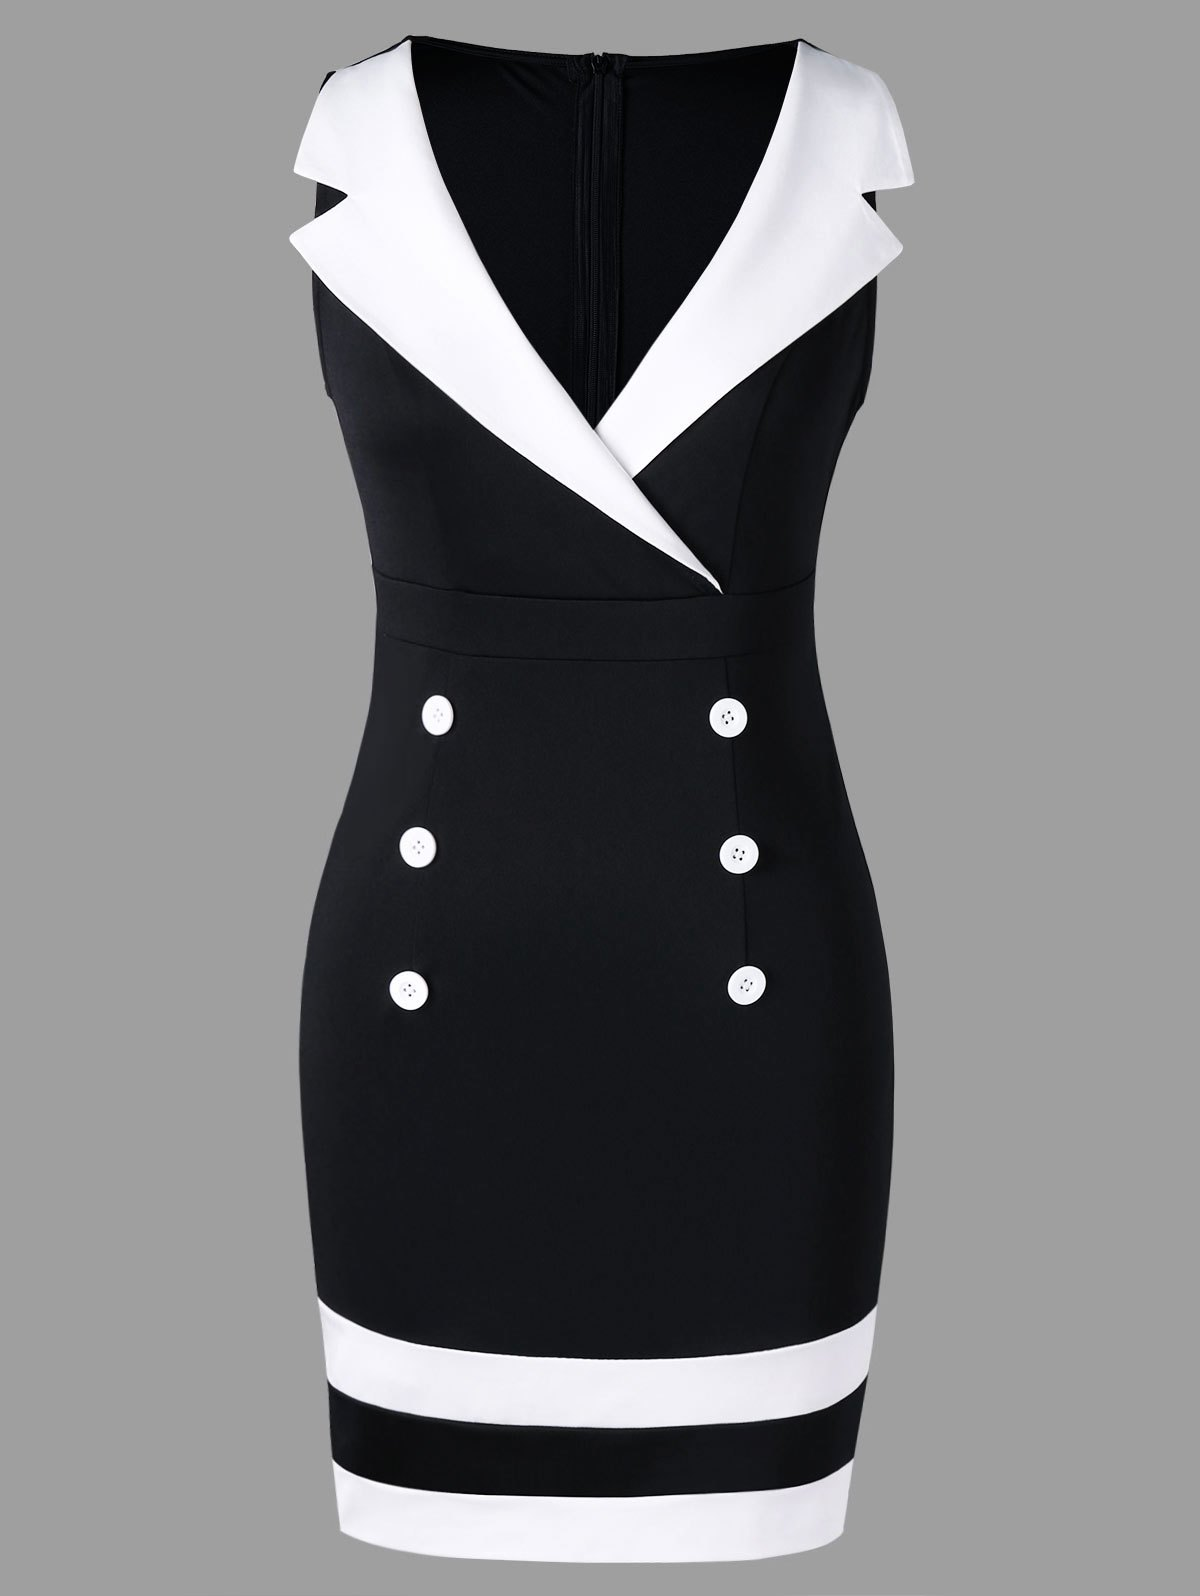 Notched Collar Sleeveless Double Breasted Dress - WHITE/BLACK M